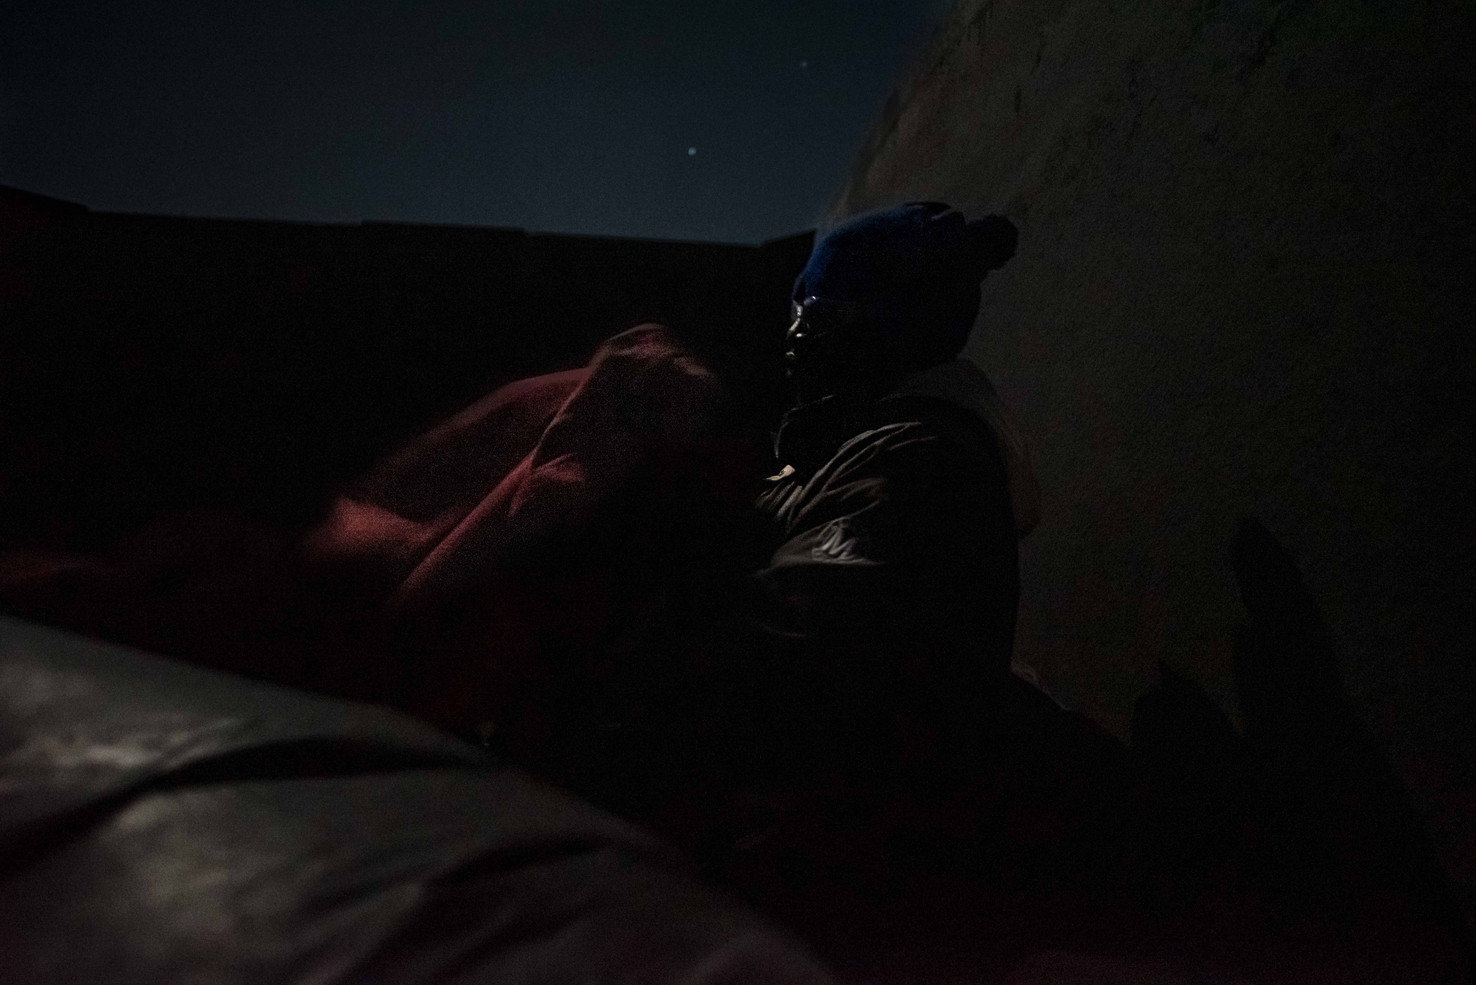 3am halfway into the night, a Malian mine worker screams in frustration at the constant whirlwind of freezing wind and sand pouring over the opentop of the cart.